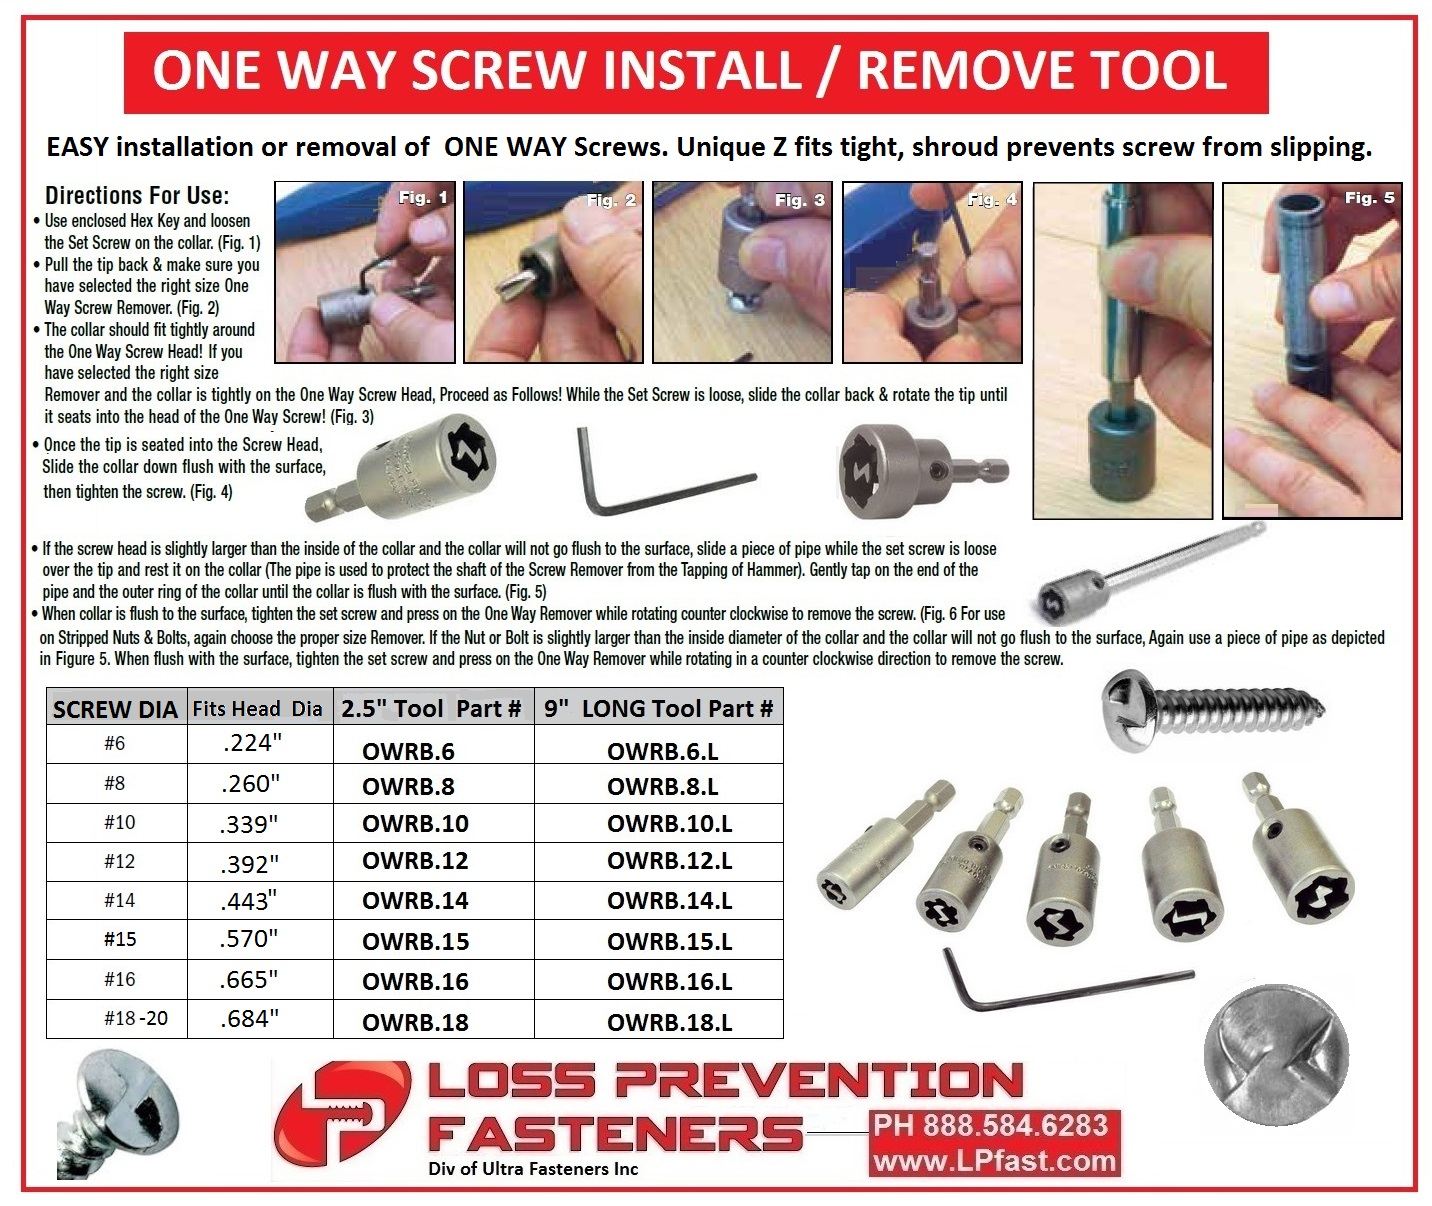 One Way Screw Removal Tool security tools